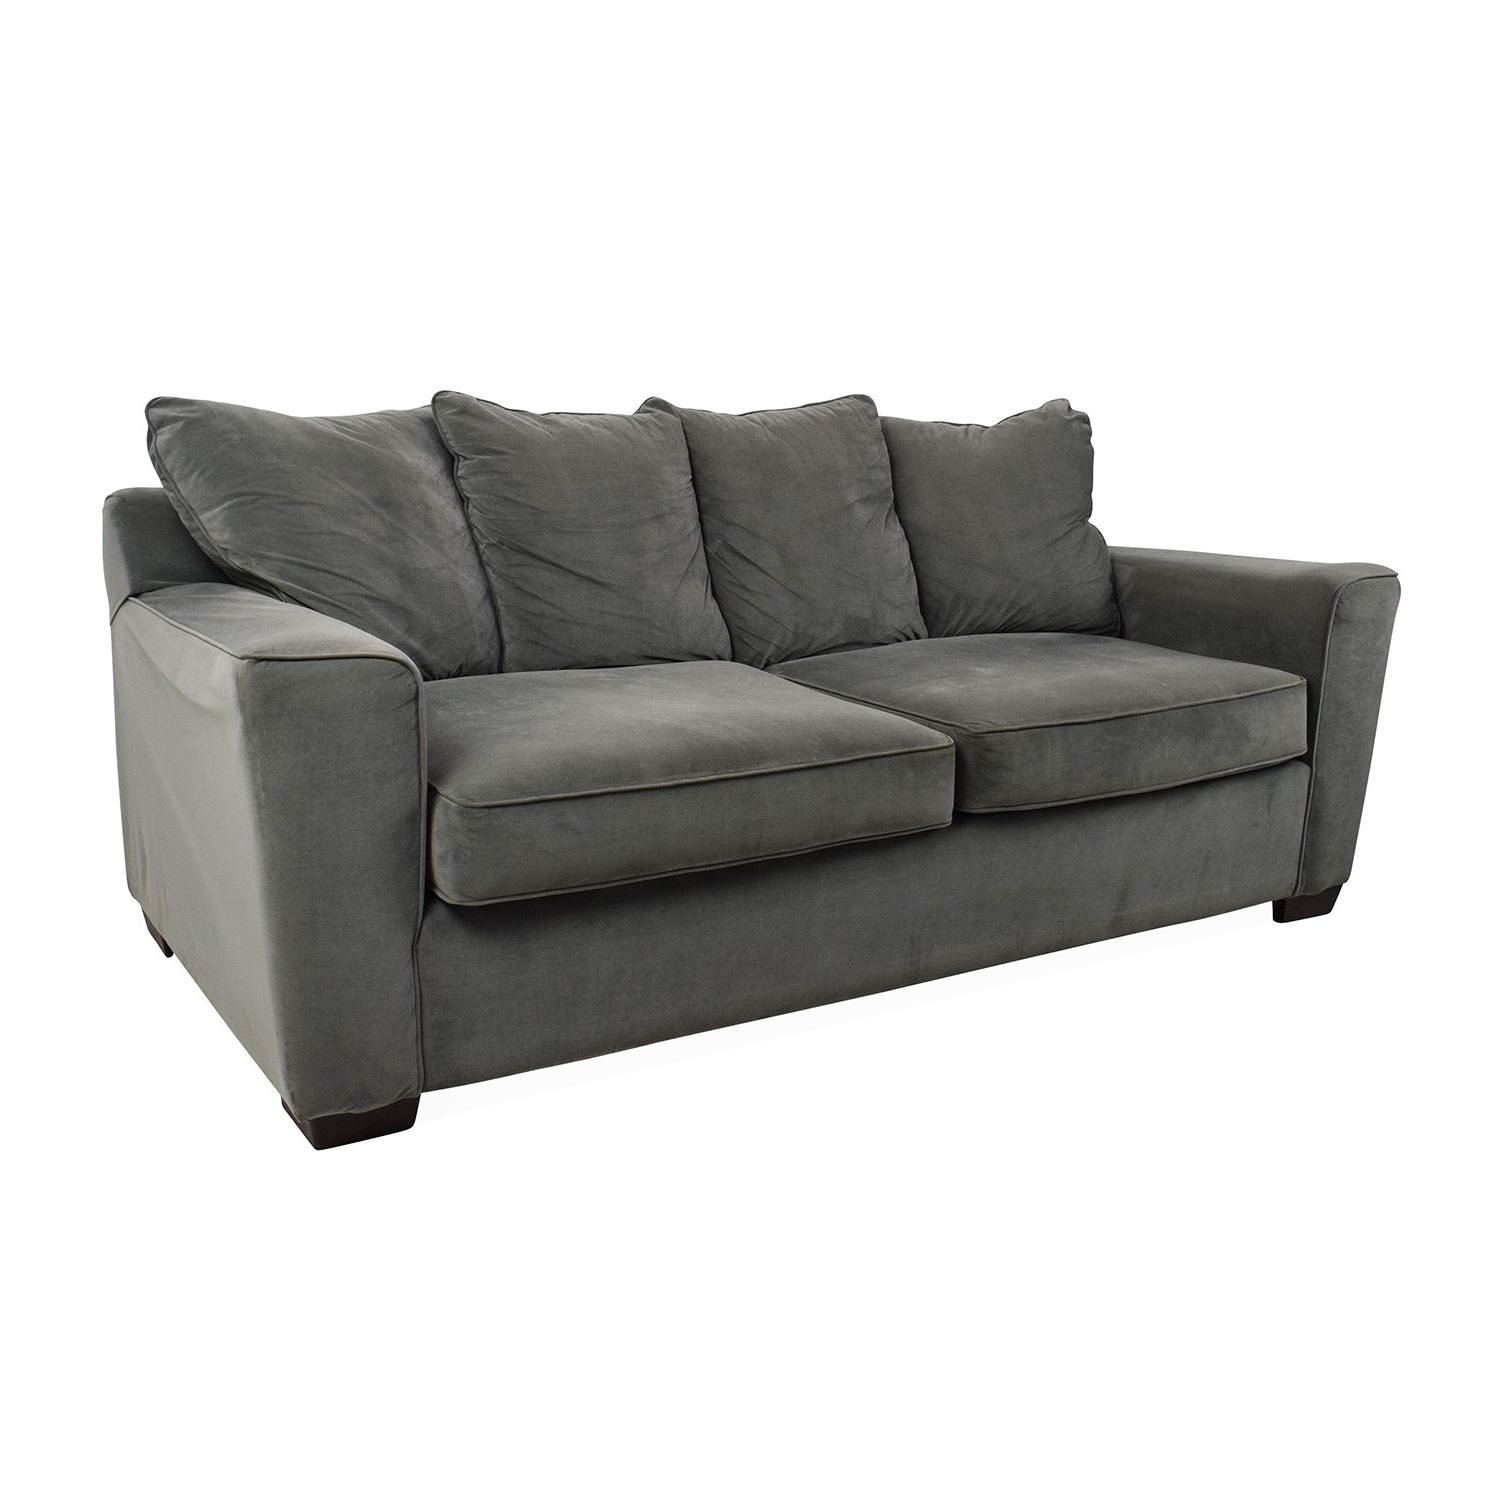 [%53% Off – Jennifer Convertibles Jennifer Convertibles Grey Couch Intended For Most Recently Released Jennifer Sofas|Jennifer Sofas Inside Most Current 53% Off – Jennifer Convertibles Jennifer Convertibles Grey Couch|Widely Used Jennifer Sofas Inside 53% Off – Jennifer Convertibles Jennifer Convertibles Grey Couch|Most Current 53% Off – Jennifer Convertibles Jennifer Convertibles Grey Couch Intended For Jennifer Sofas%] (View 3 of 20)